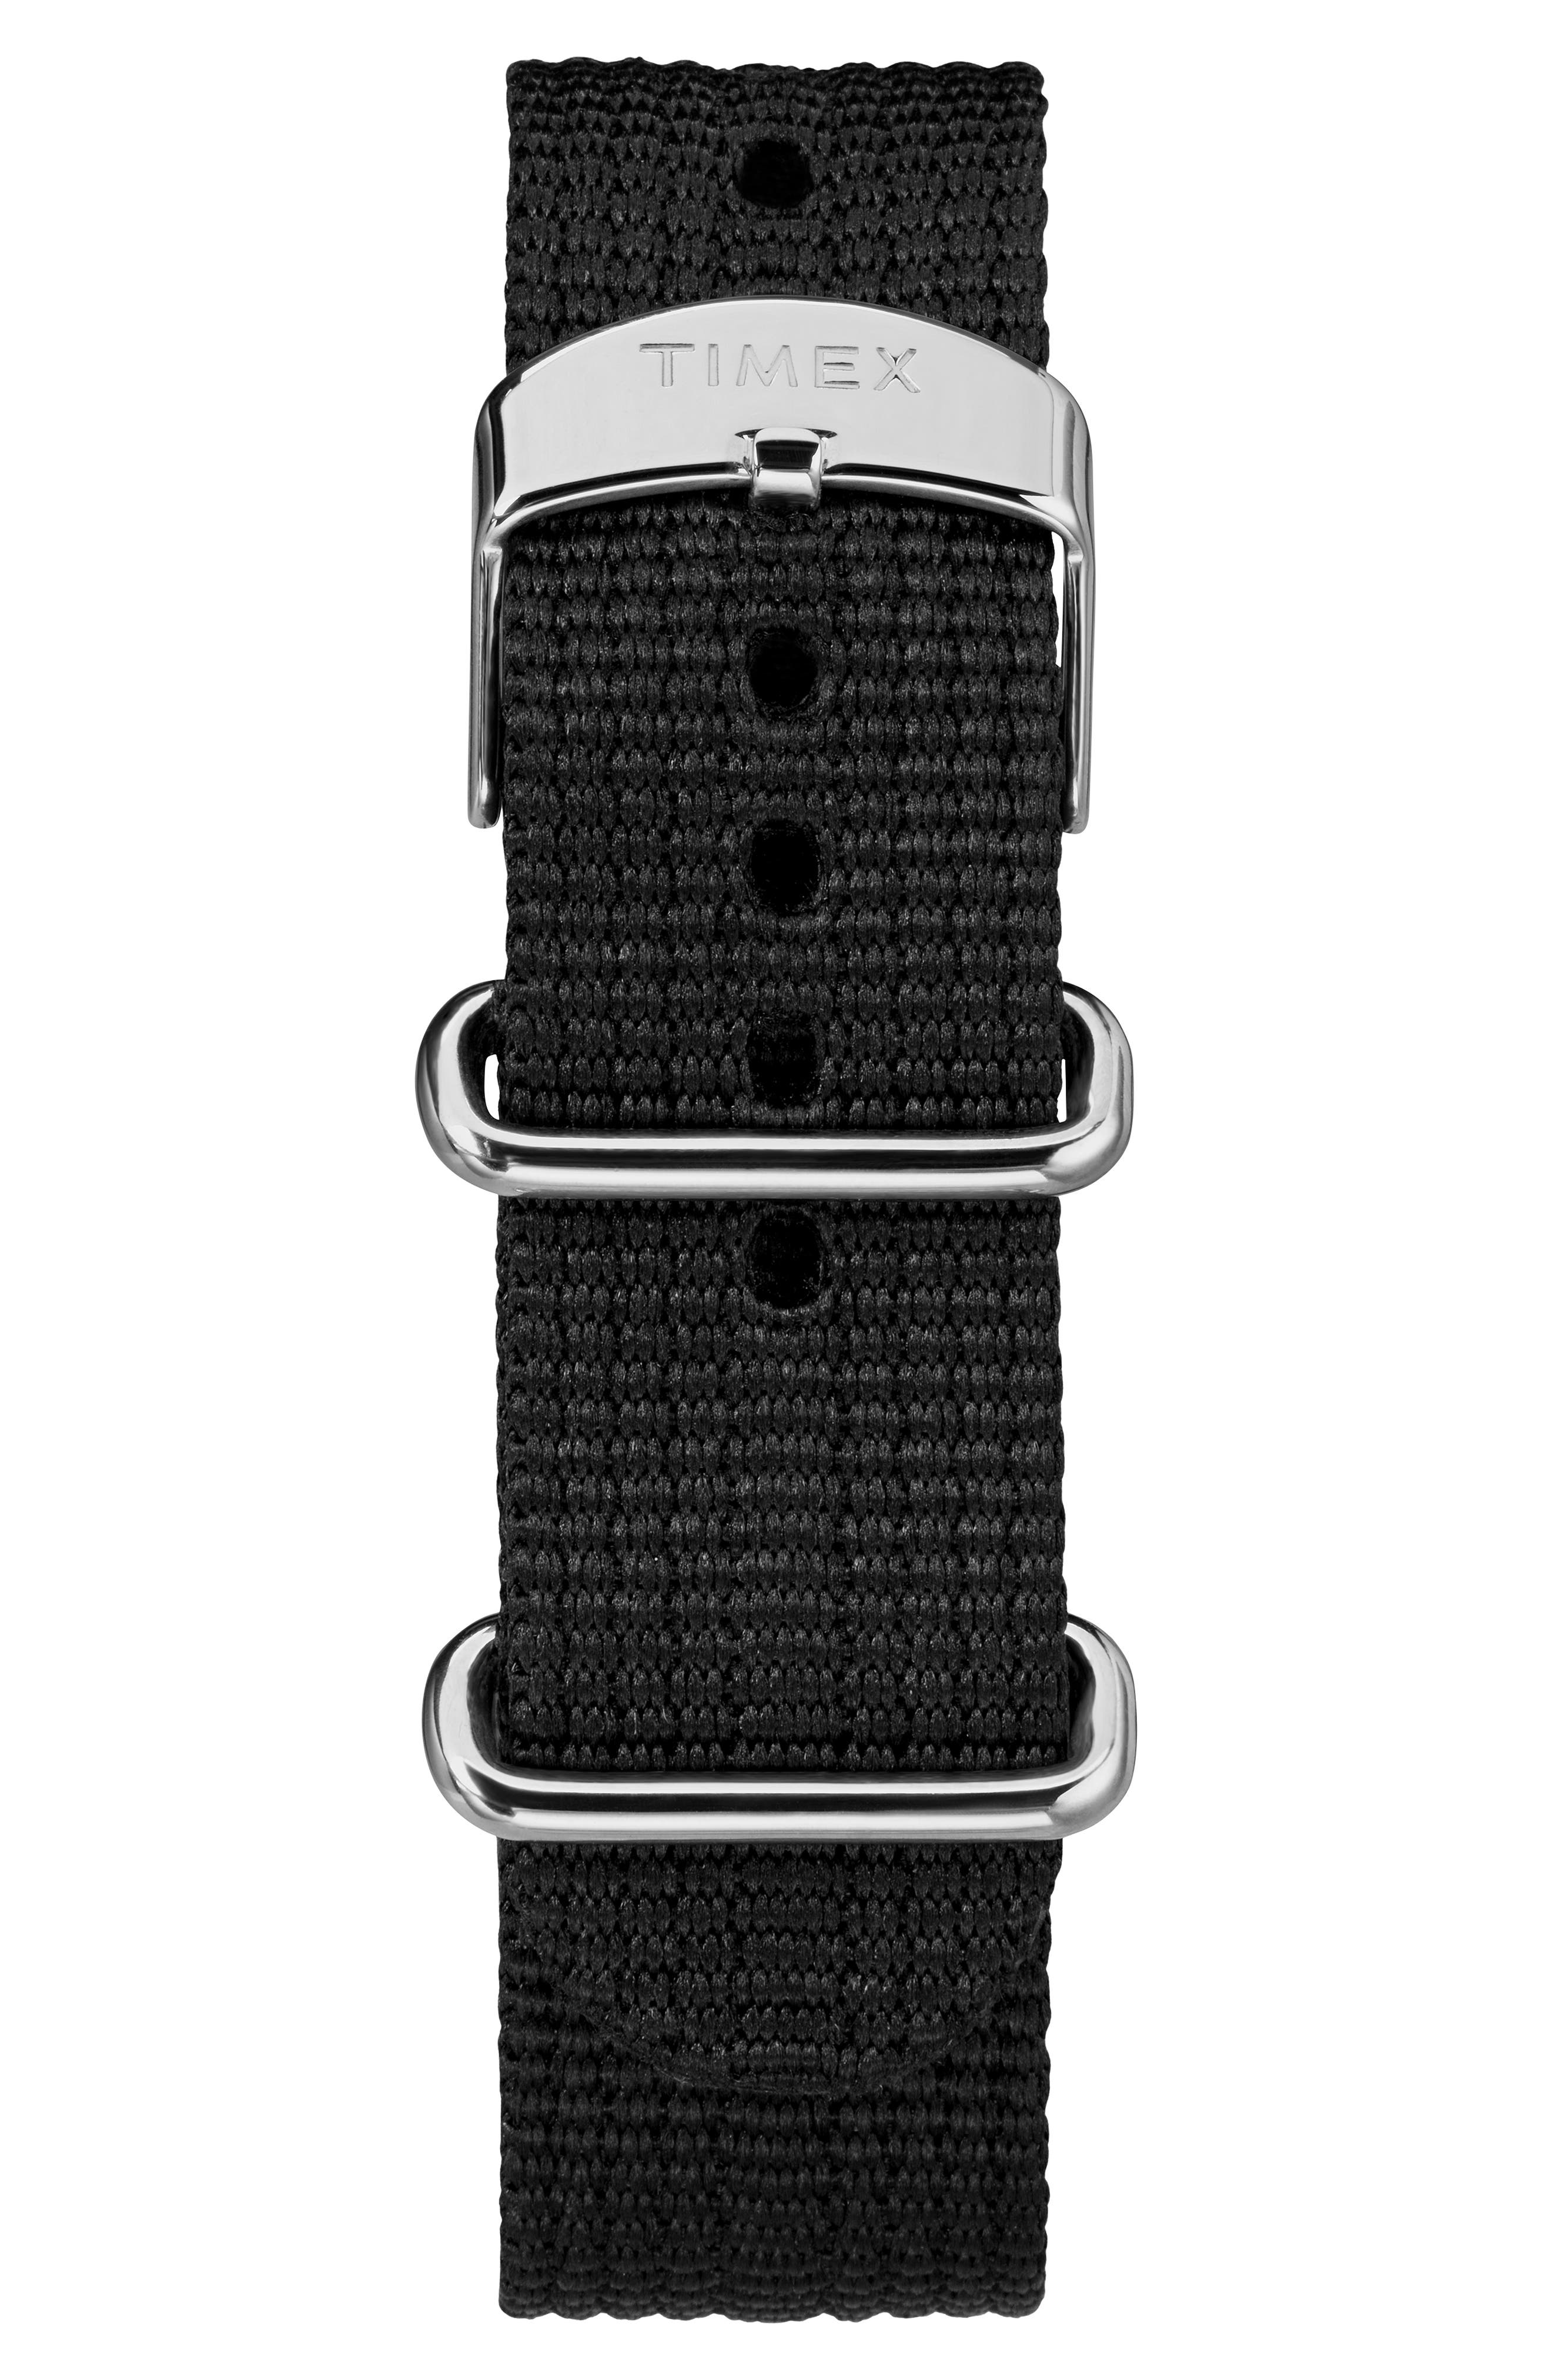 Timex<sup>®</sup> x Todd Snyder The Mod NATO Strap Watch, 40mm,                             Alternate thumbnail 3, color,                             BLACK/ WHITE